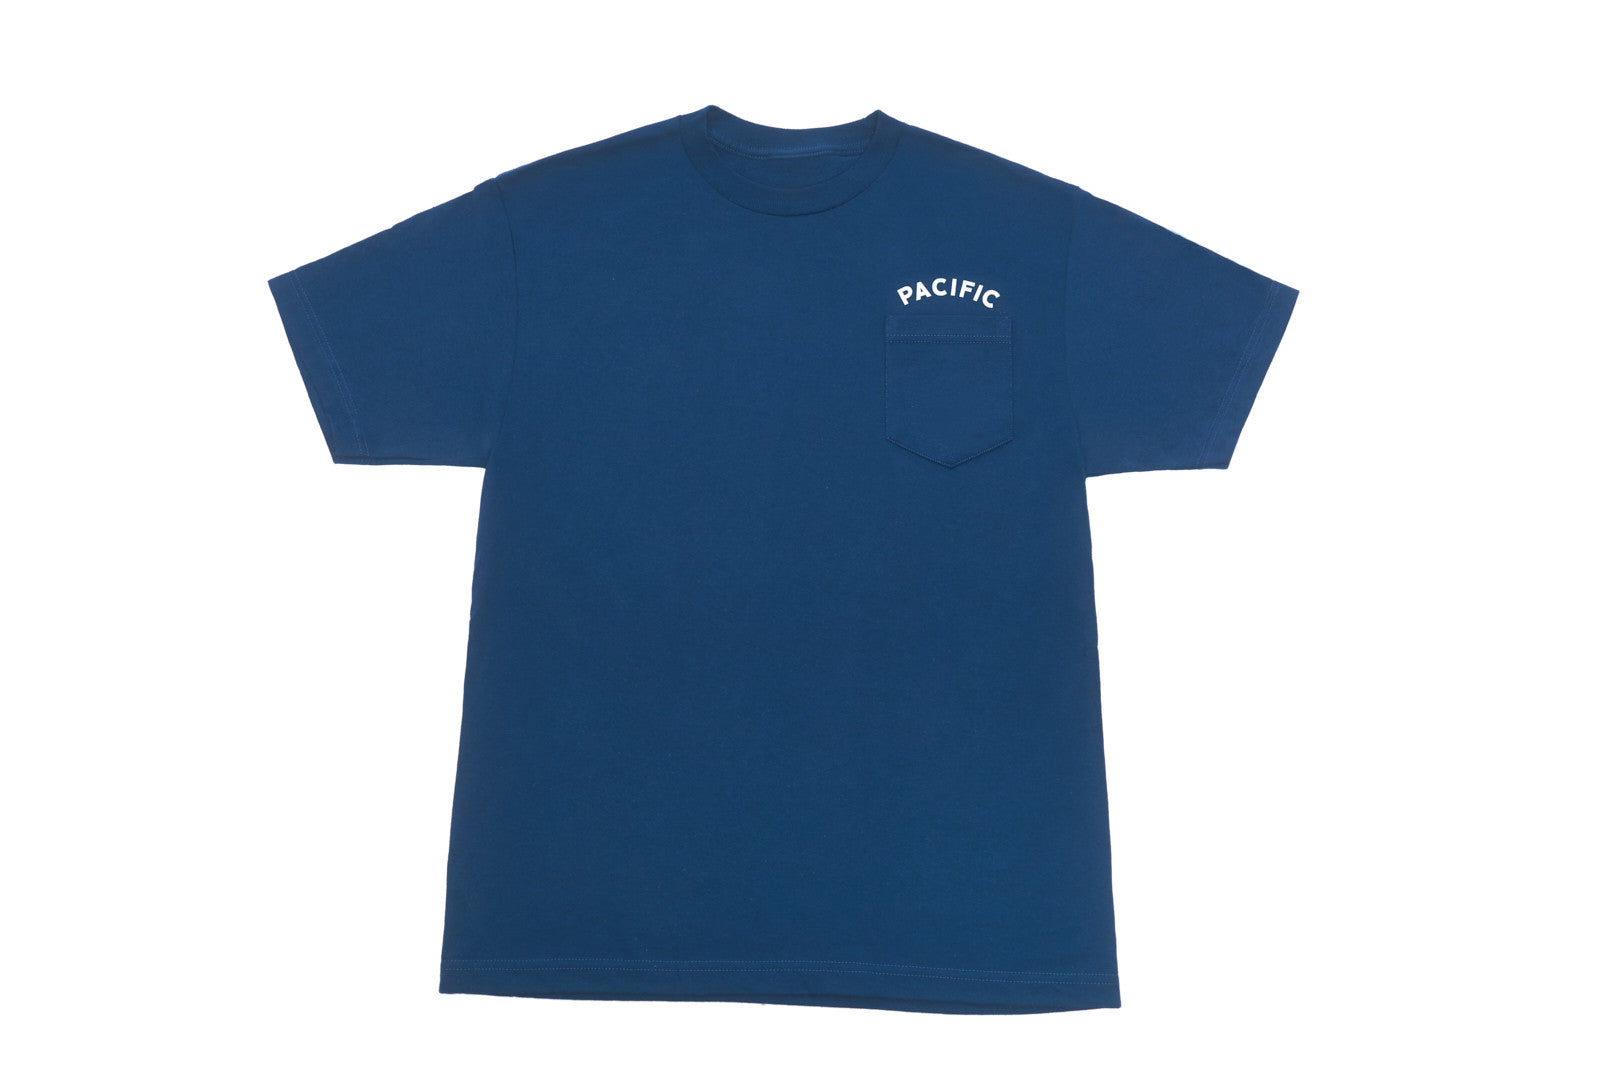 PACIFIC - Pocket T - Harbor Blue